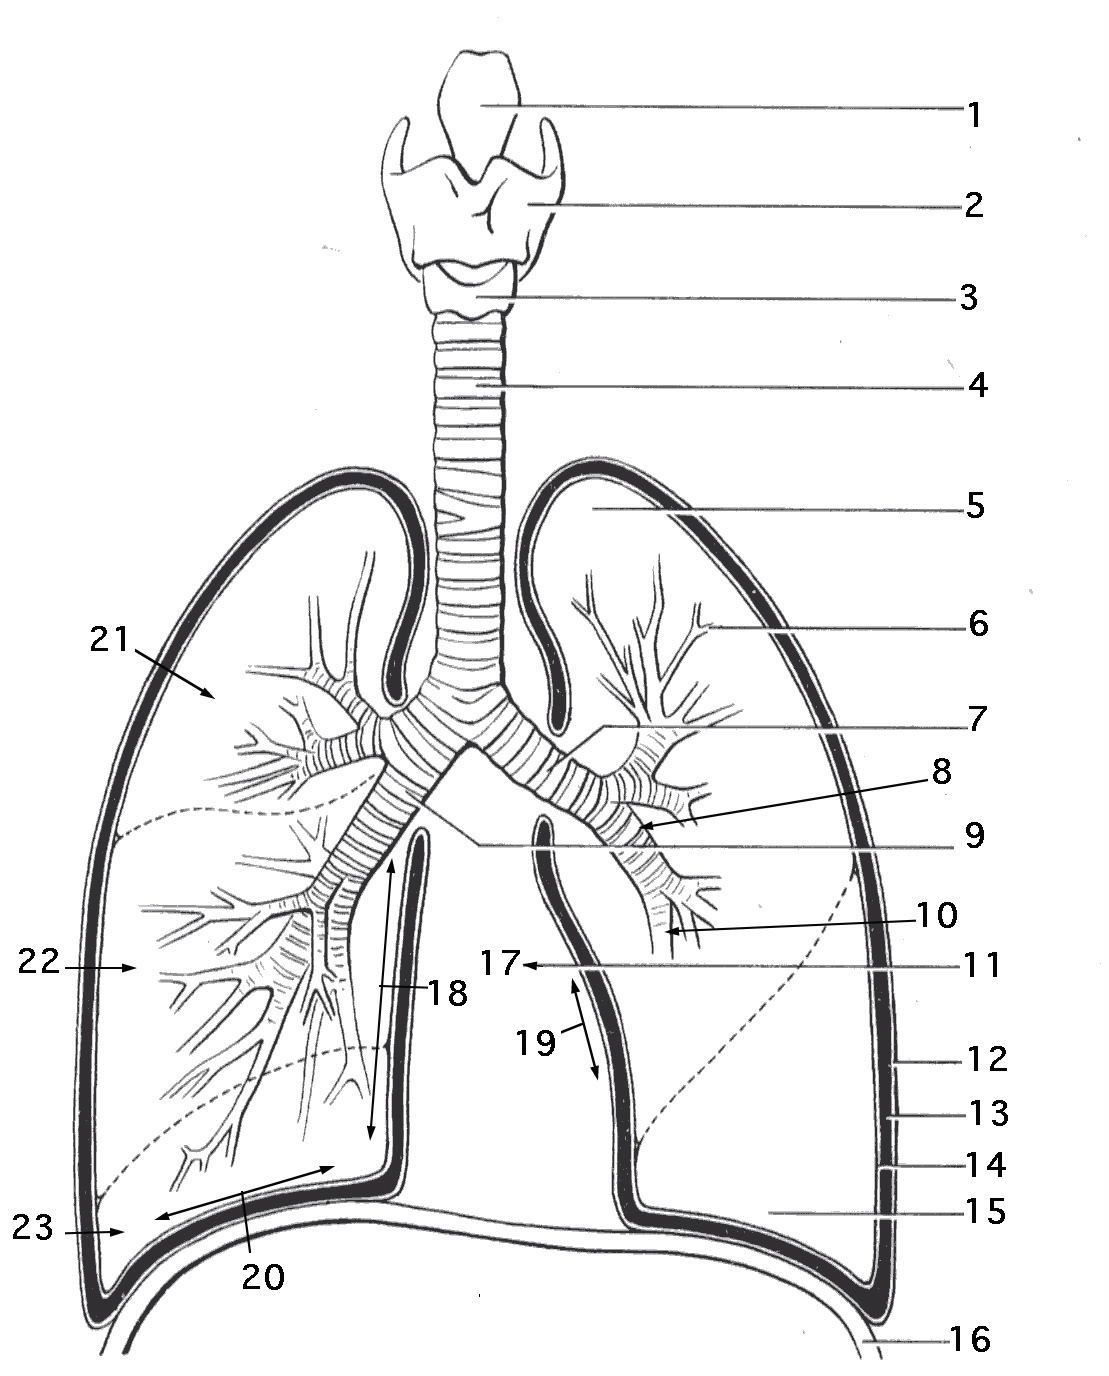 Lungs Respiratory System Coloring Page Work Sheet For Kids